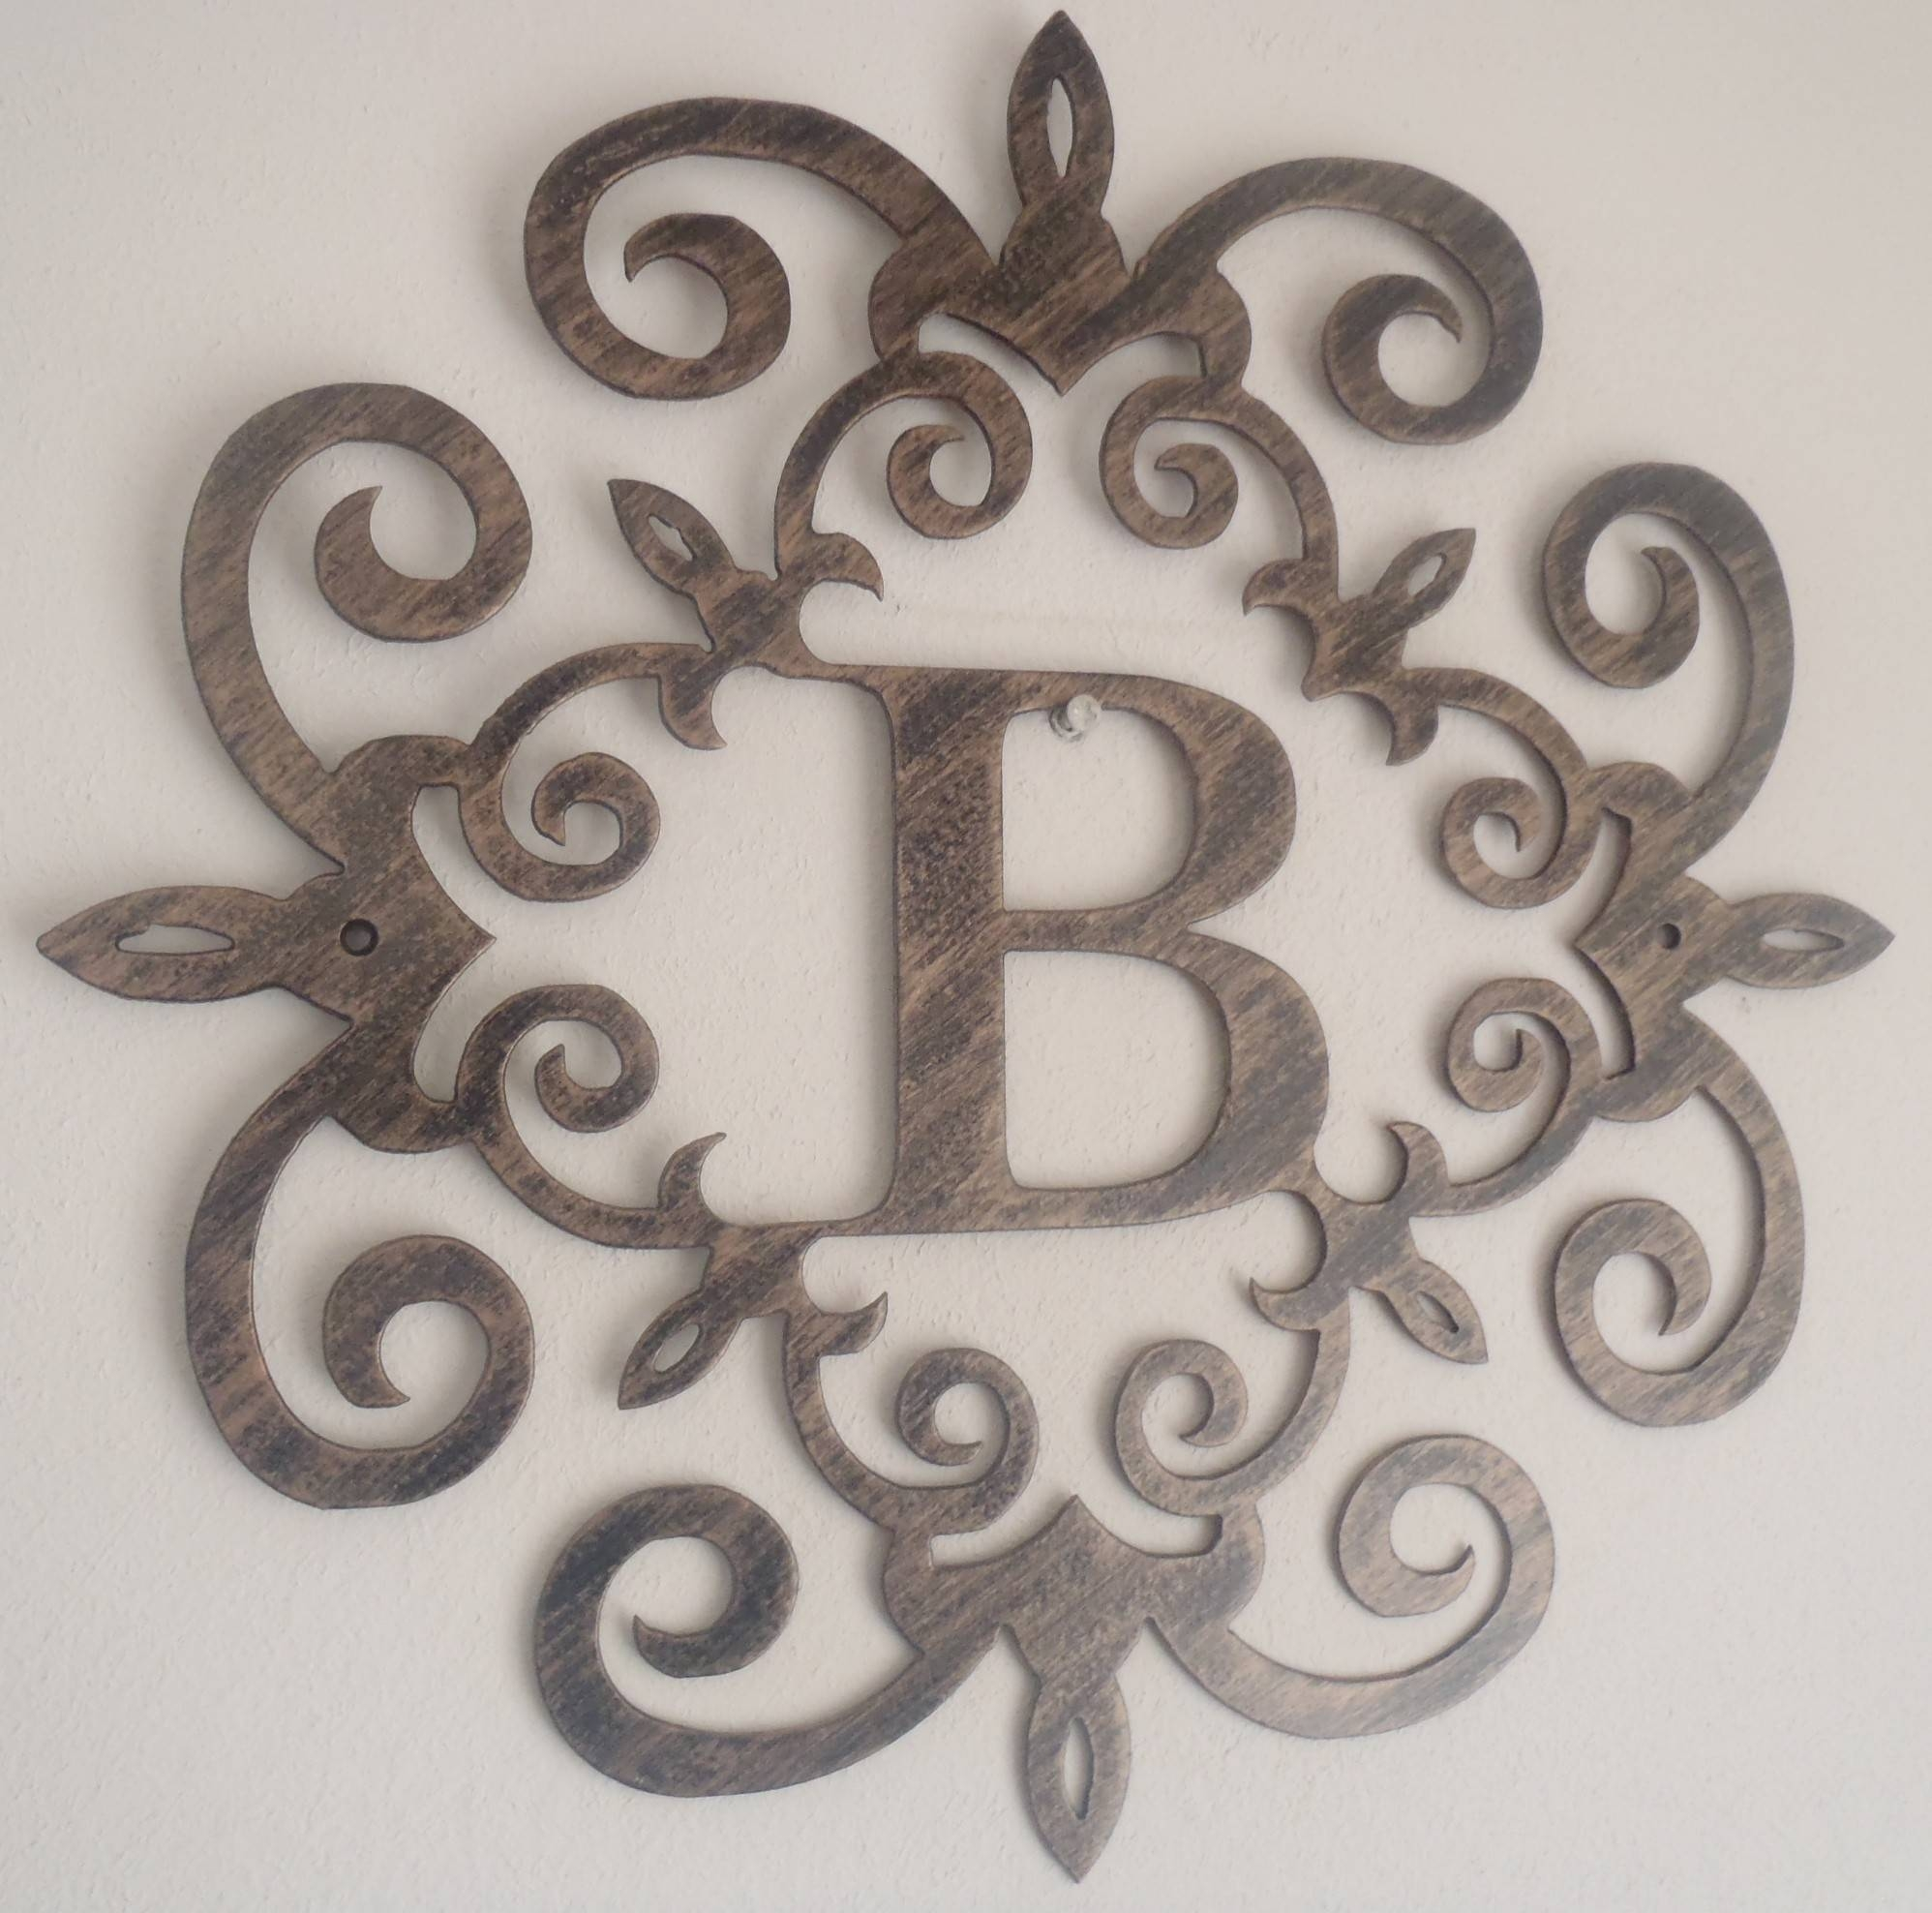 Decorating Large Metal Letters For Wall Decor | Jeffsbakery Intended For Most Up To Date Large Metal Wall Art Decor (View 4 of 20)